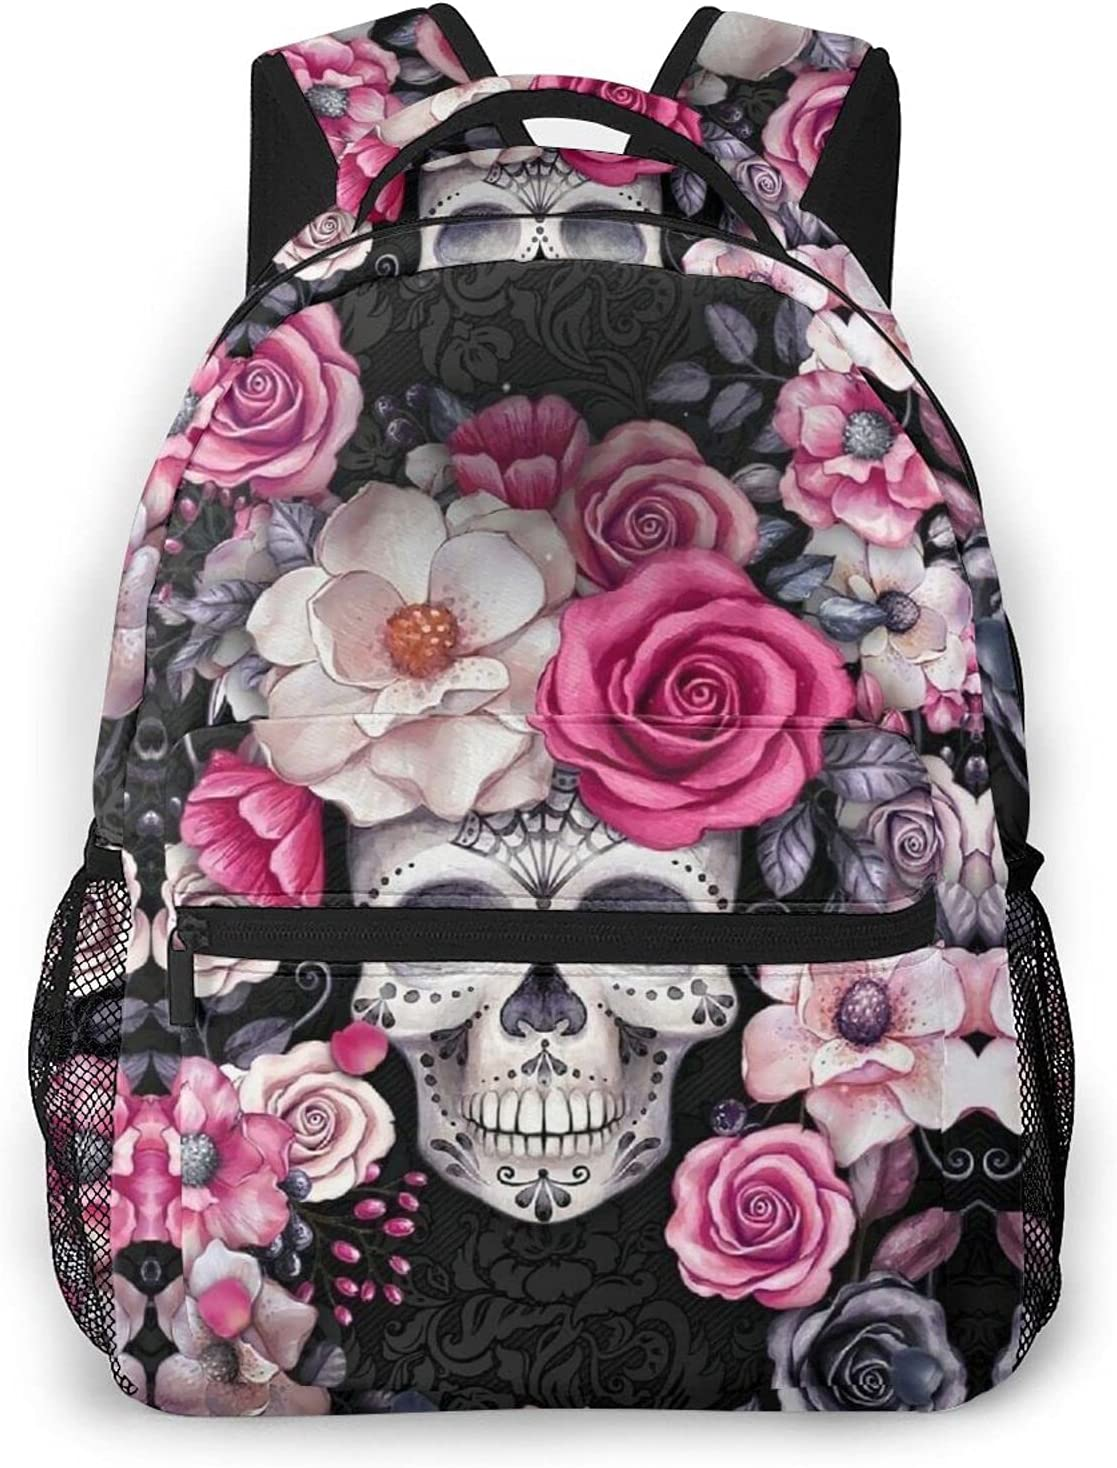 Floral Skull And Rose Quality inspection Backpack Sh Daypack Hiking Laptop Genuine